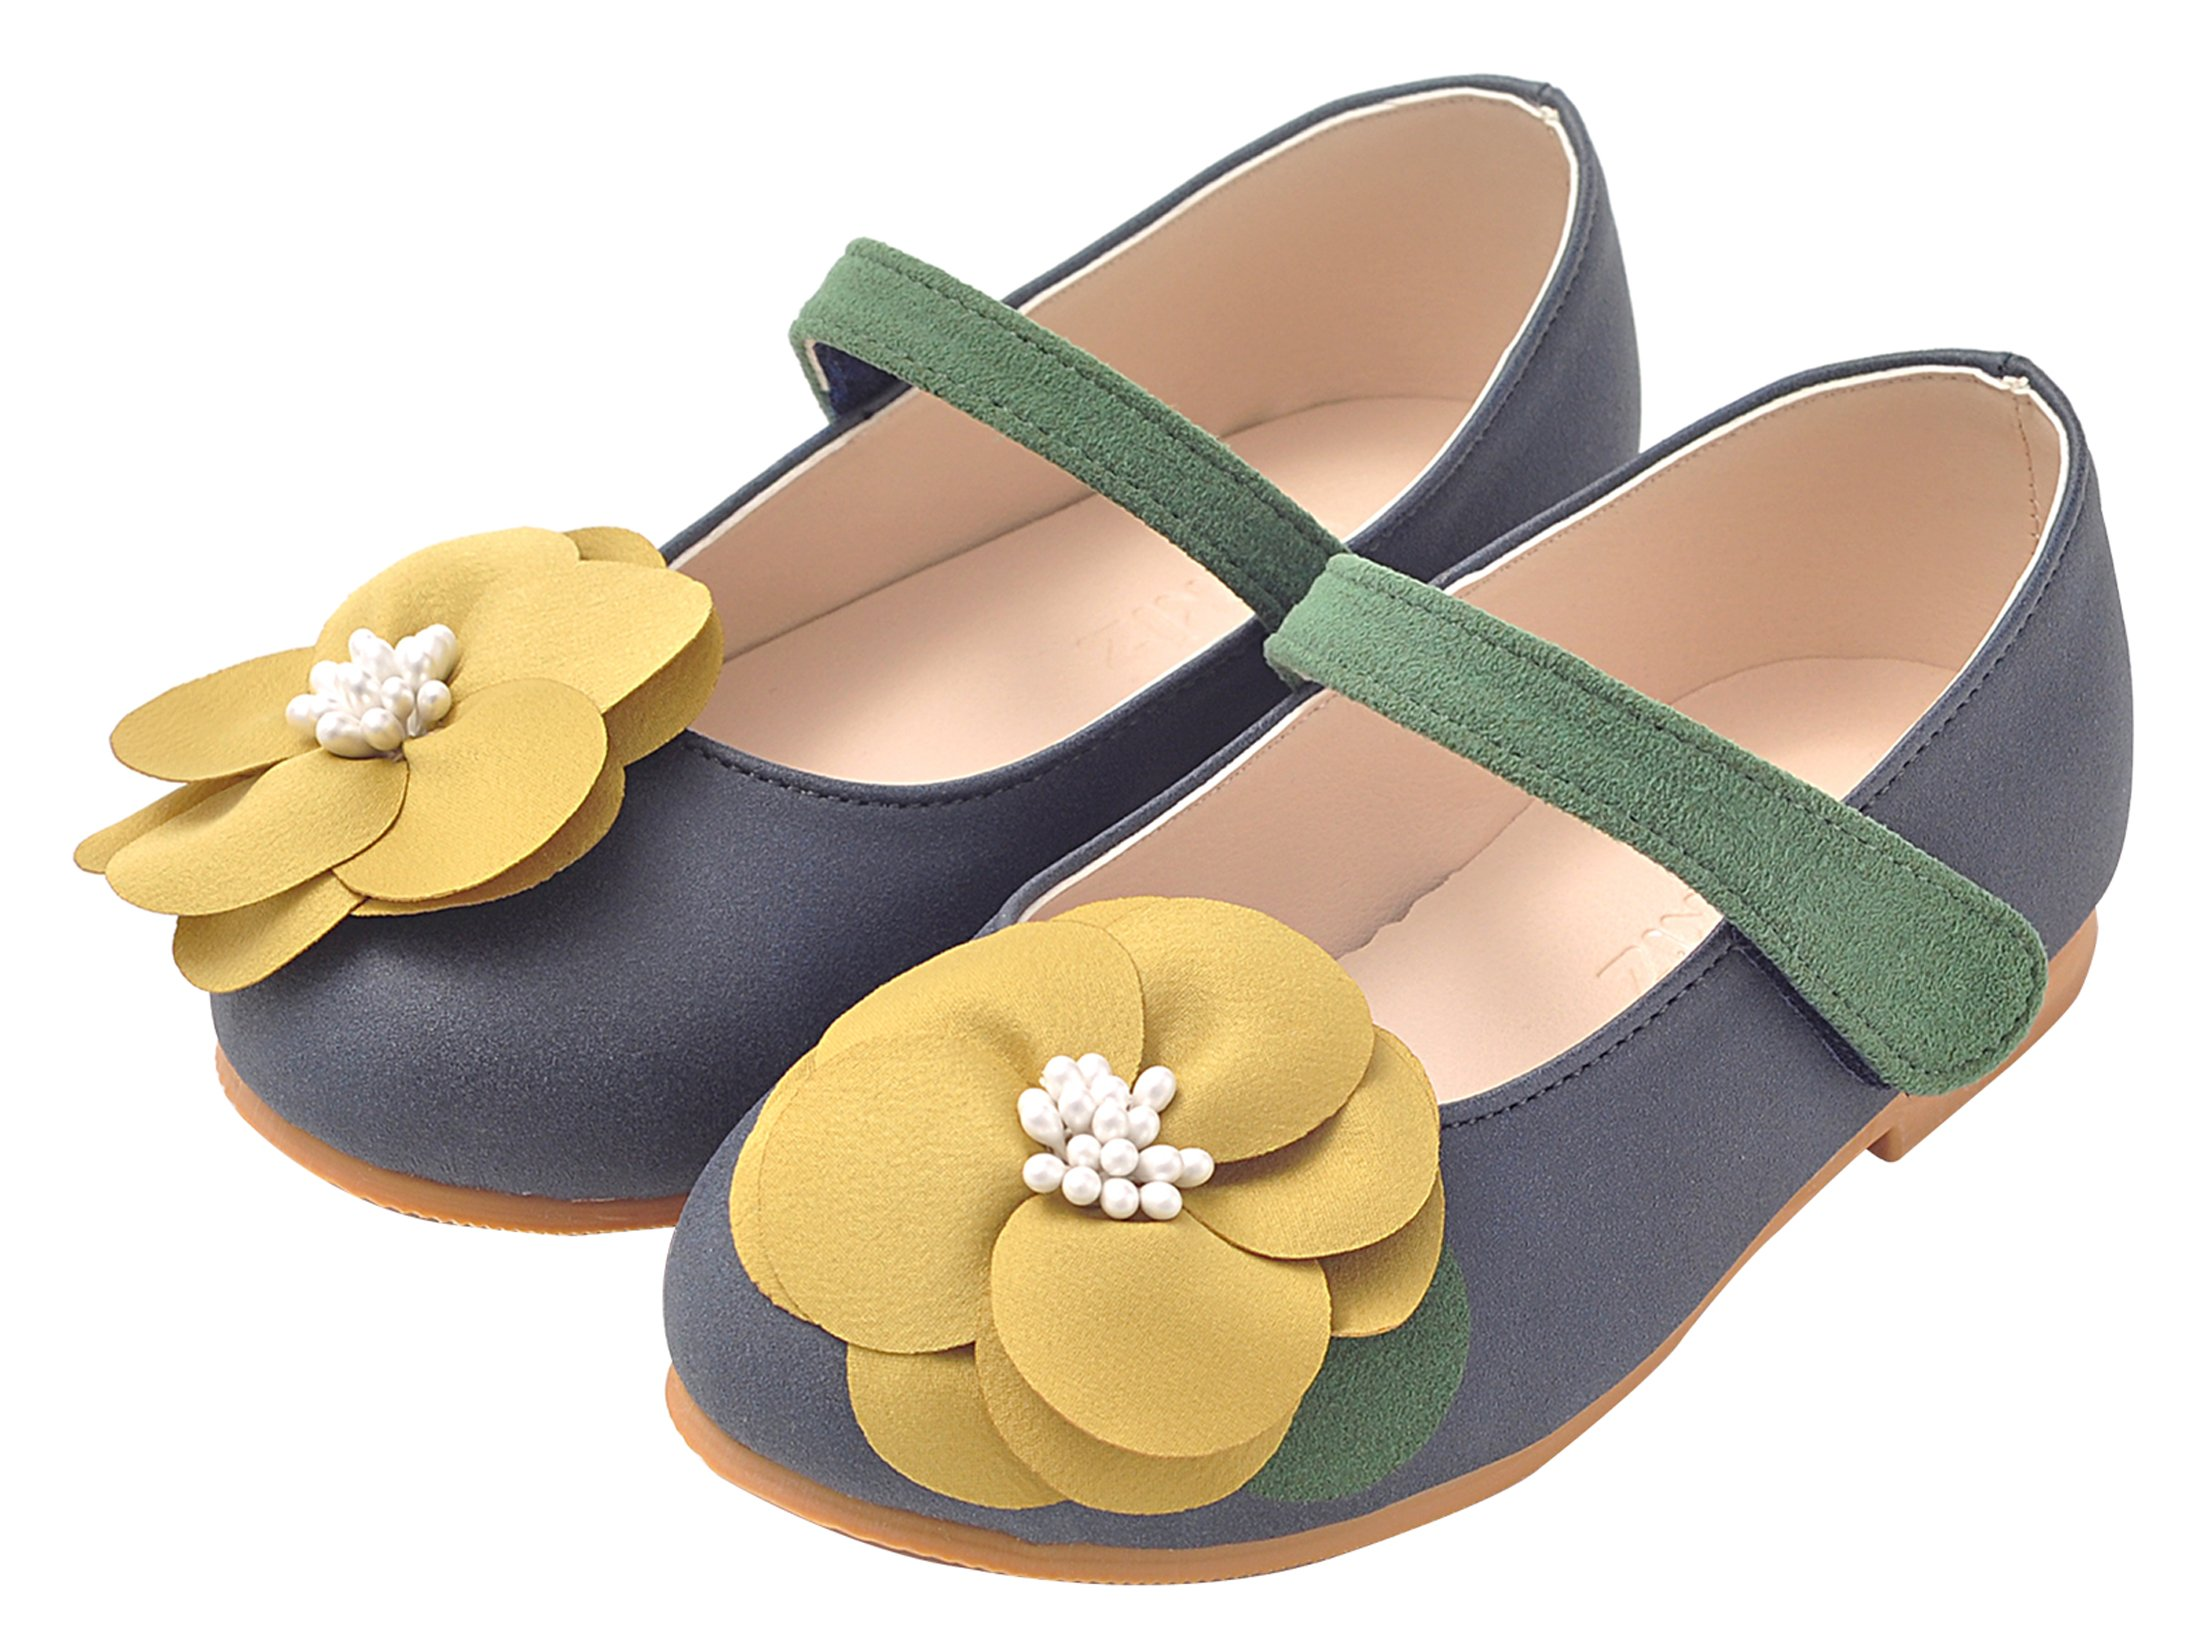 Ozkiz Girls Navy Flats Mary Jane Shoes dien Flower 11m US Little Kids